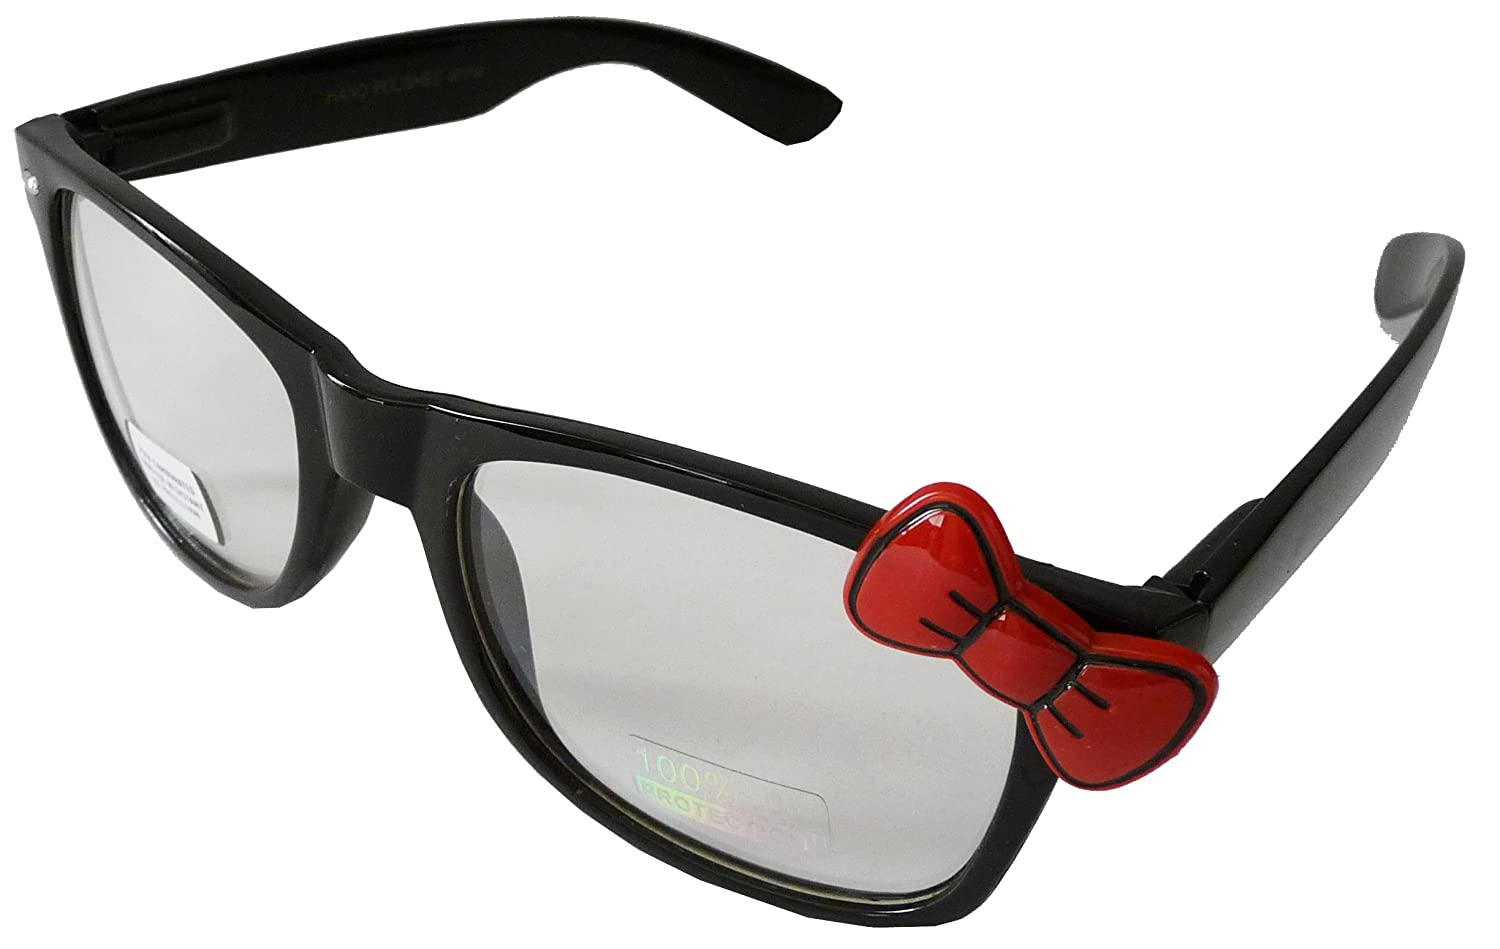 7c0073396 Sanrio Hello Kitty Style Designer Inspired Wayfarers Prescription Glasses  Frame - Black Frame with Red Bow: Amazon.co.uk: Sports & Outdoors